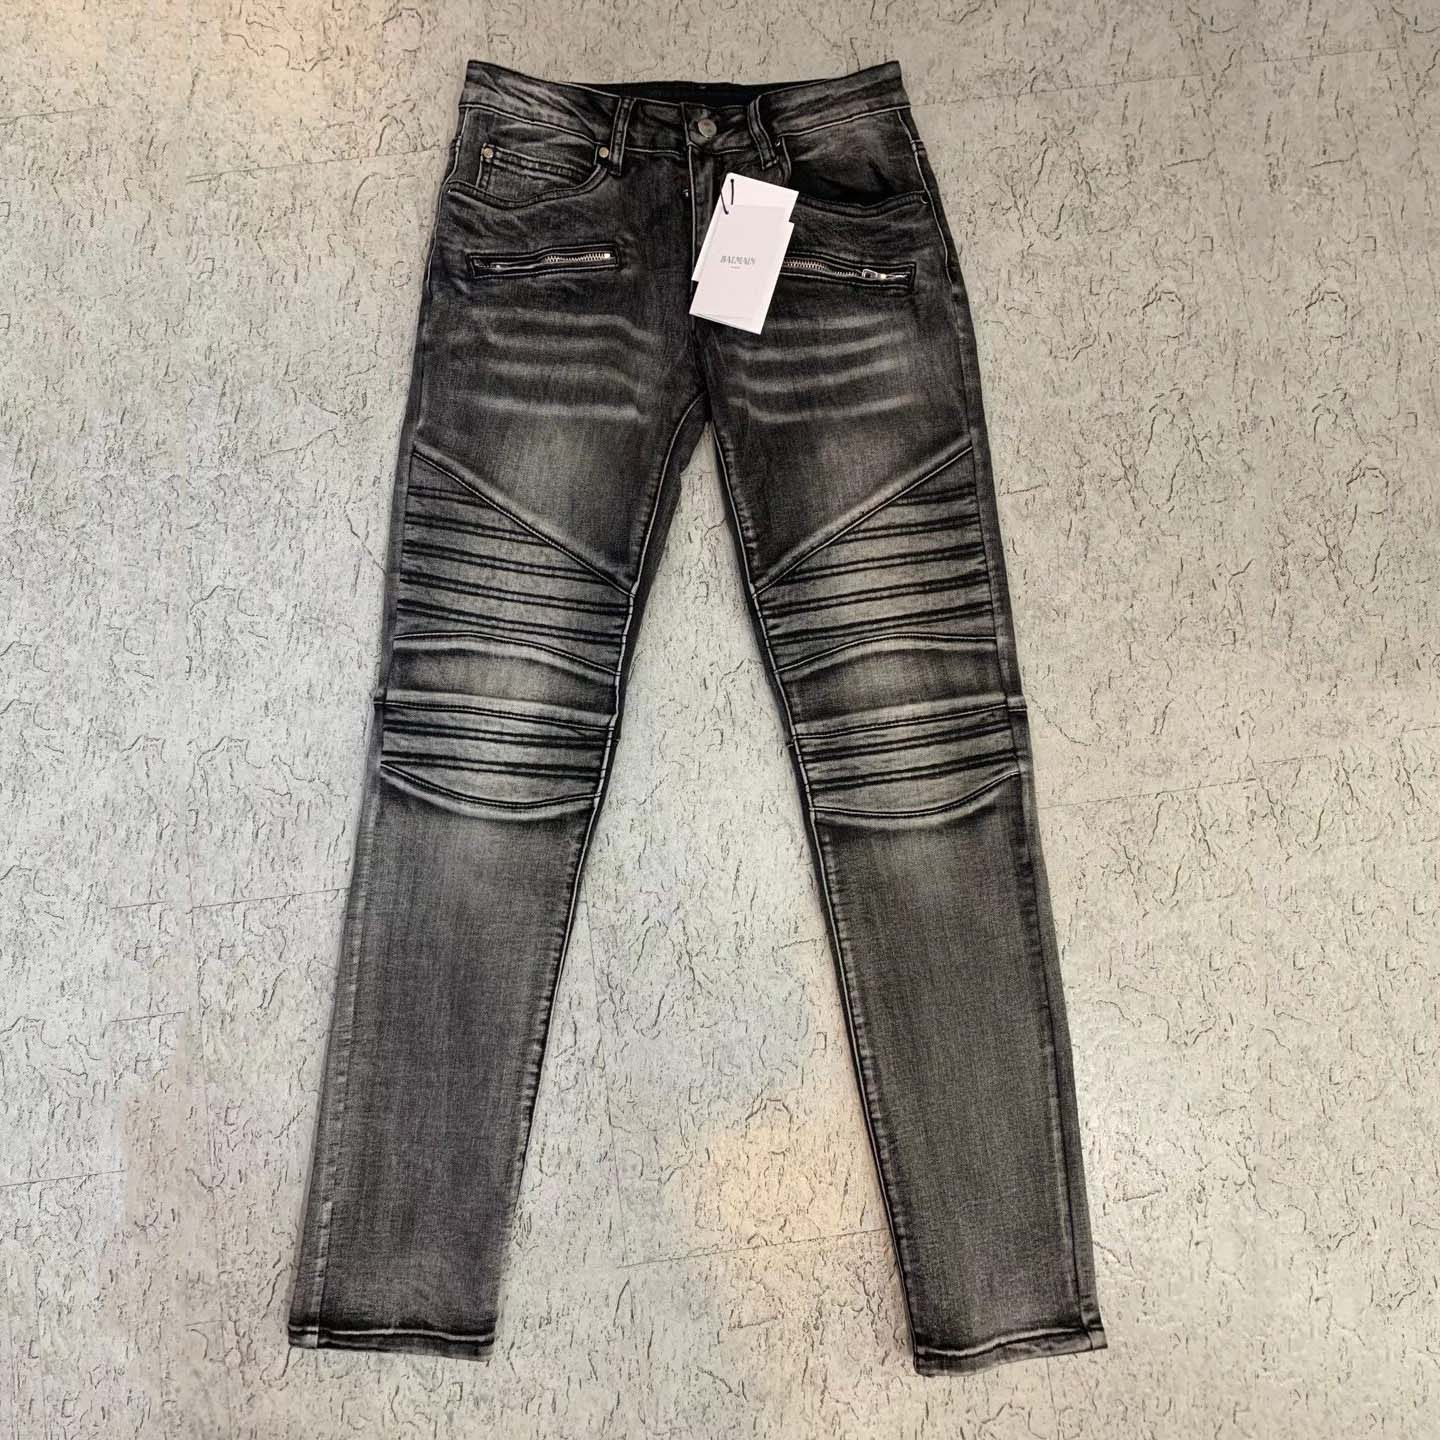 Black Slim-fit Jeans  - FashionBeast